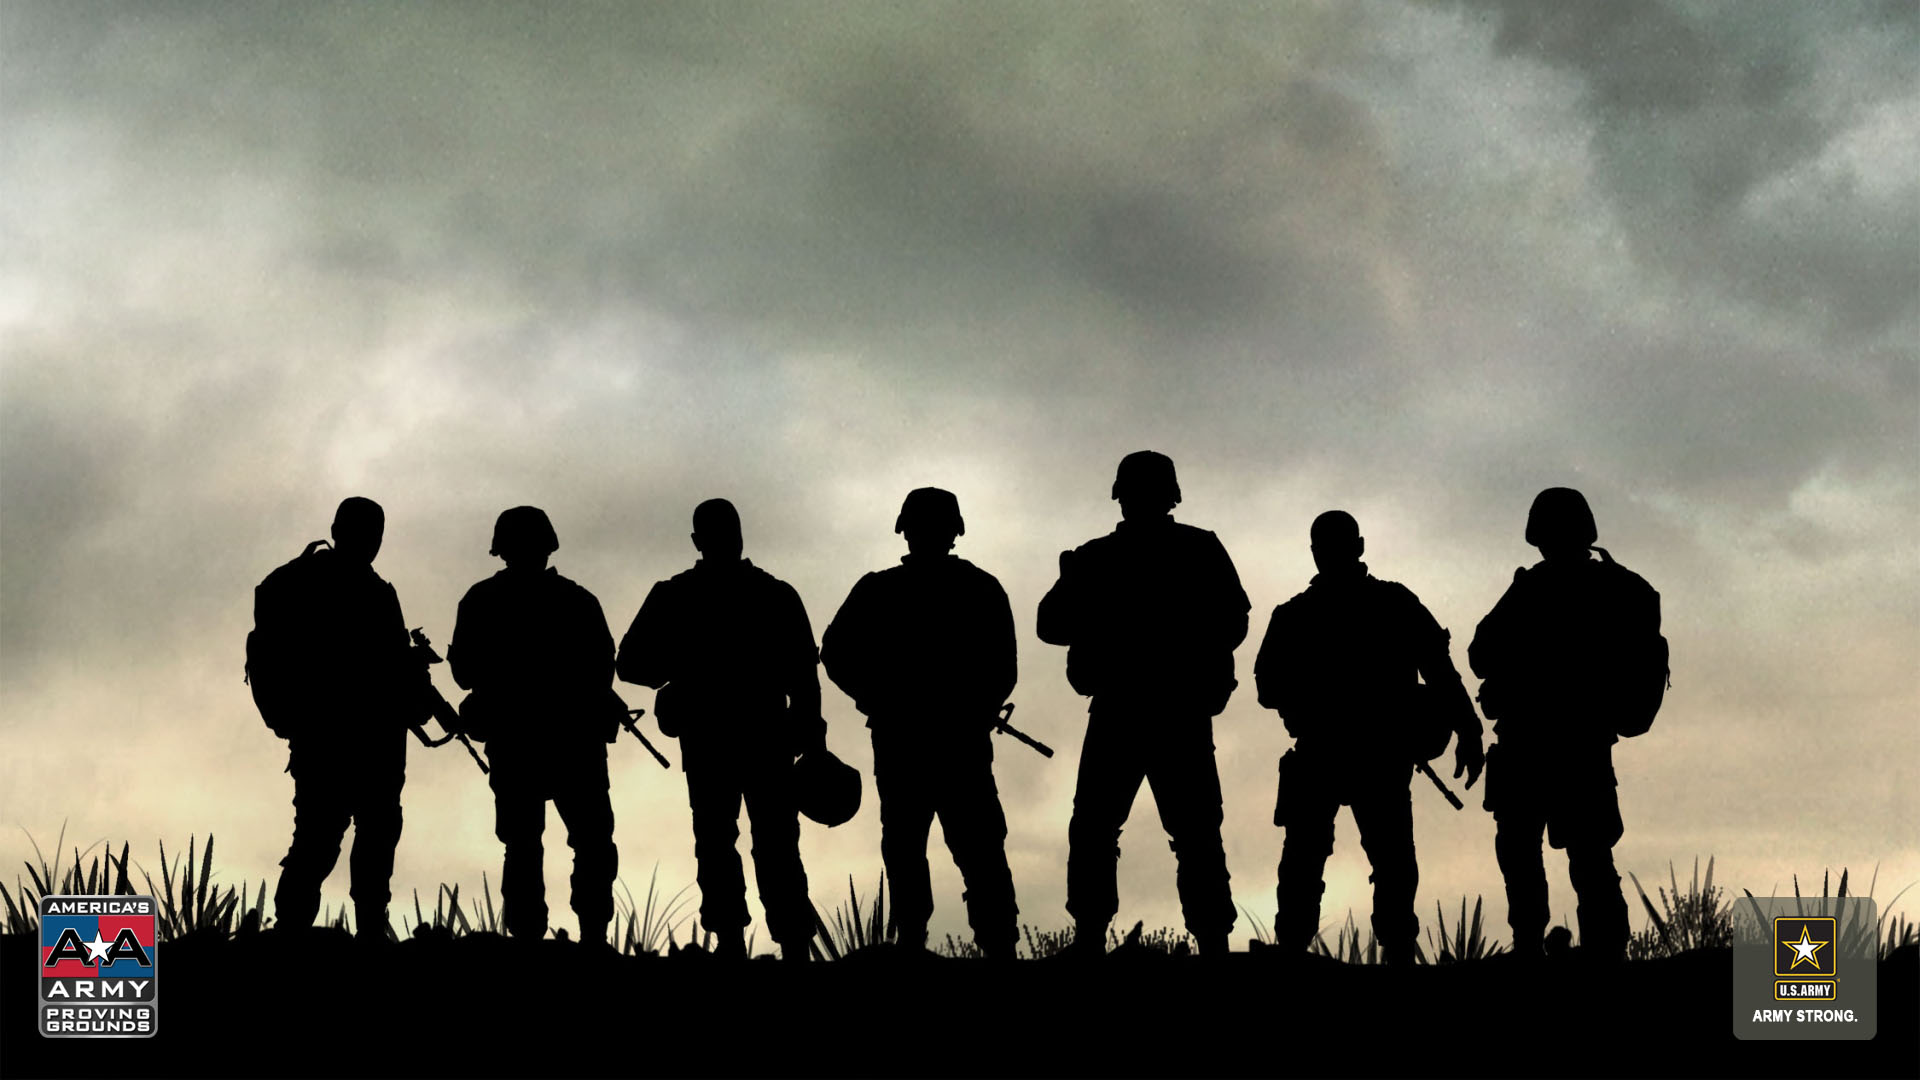 US Army Soldier Wallpaper for Download 36 US Army 1920x1080